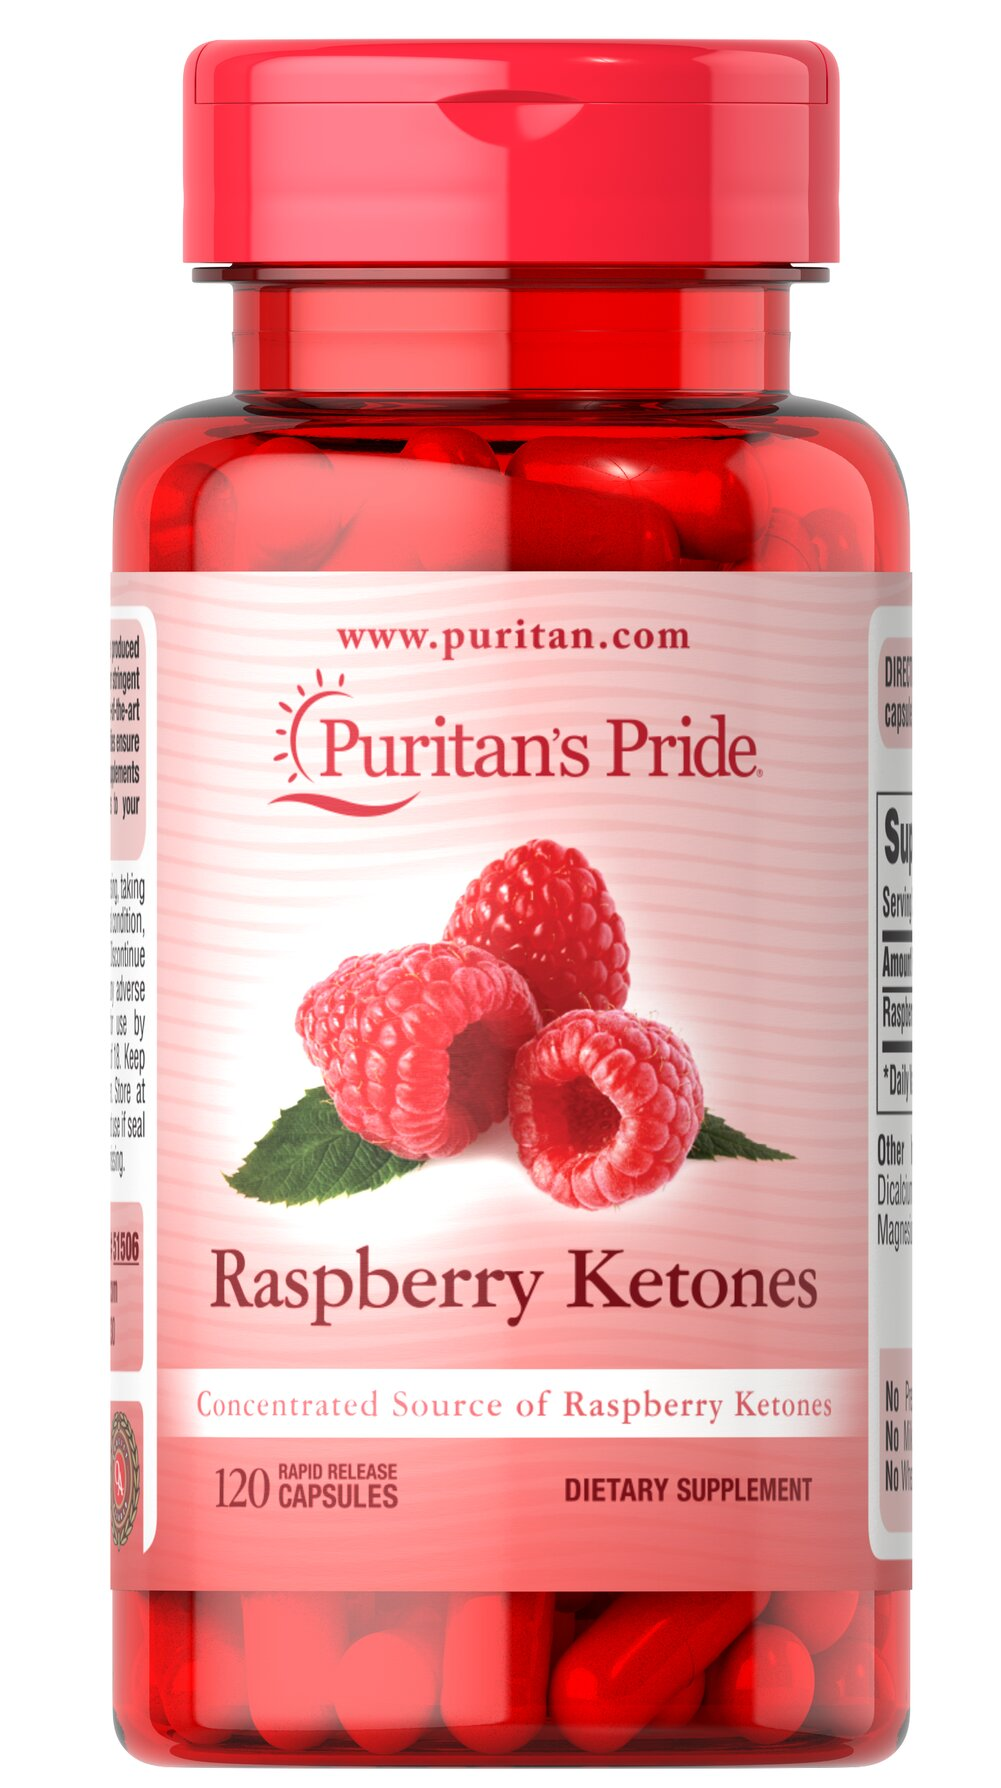 Raspberry Ketones 100 mg Thumbnail Alternate Bottle View